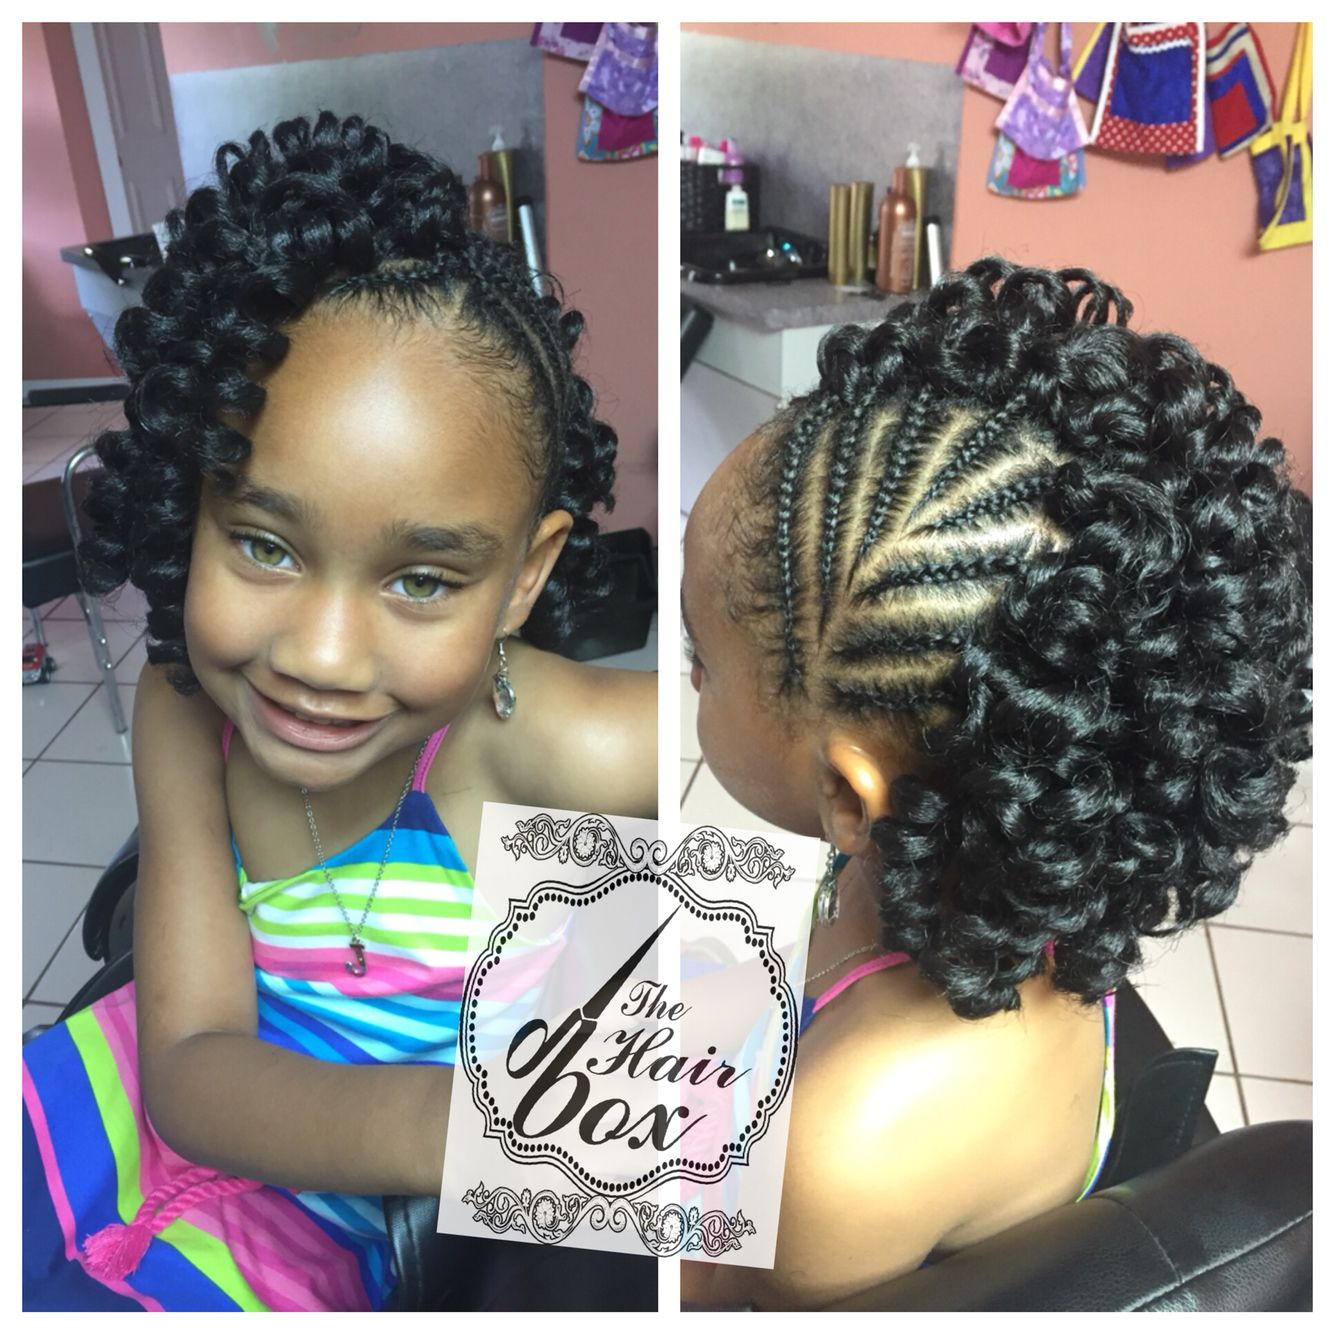 Crochet Hair Styles For Little Girl : ... braided hairstyles, Natural kids hairstyles and Black girls hairstyles